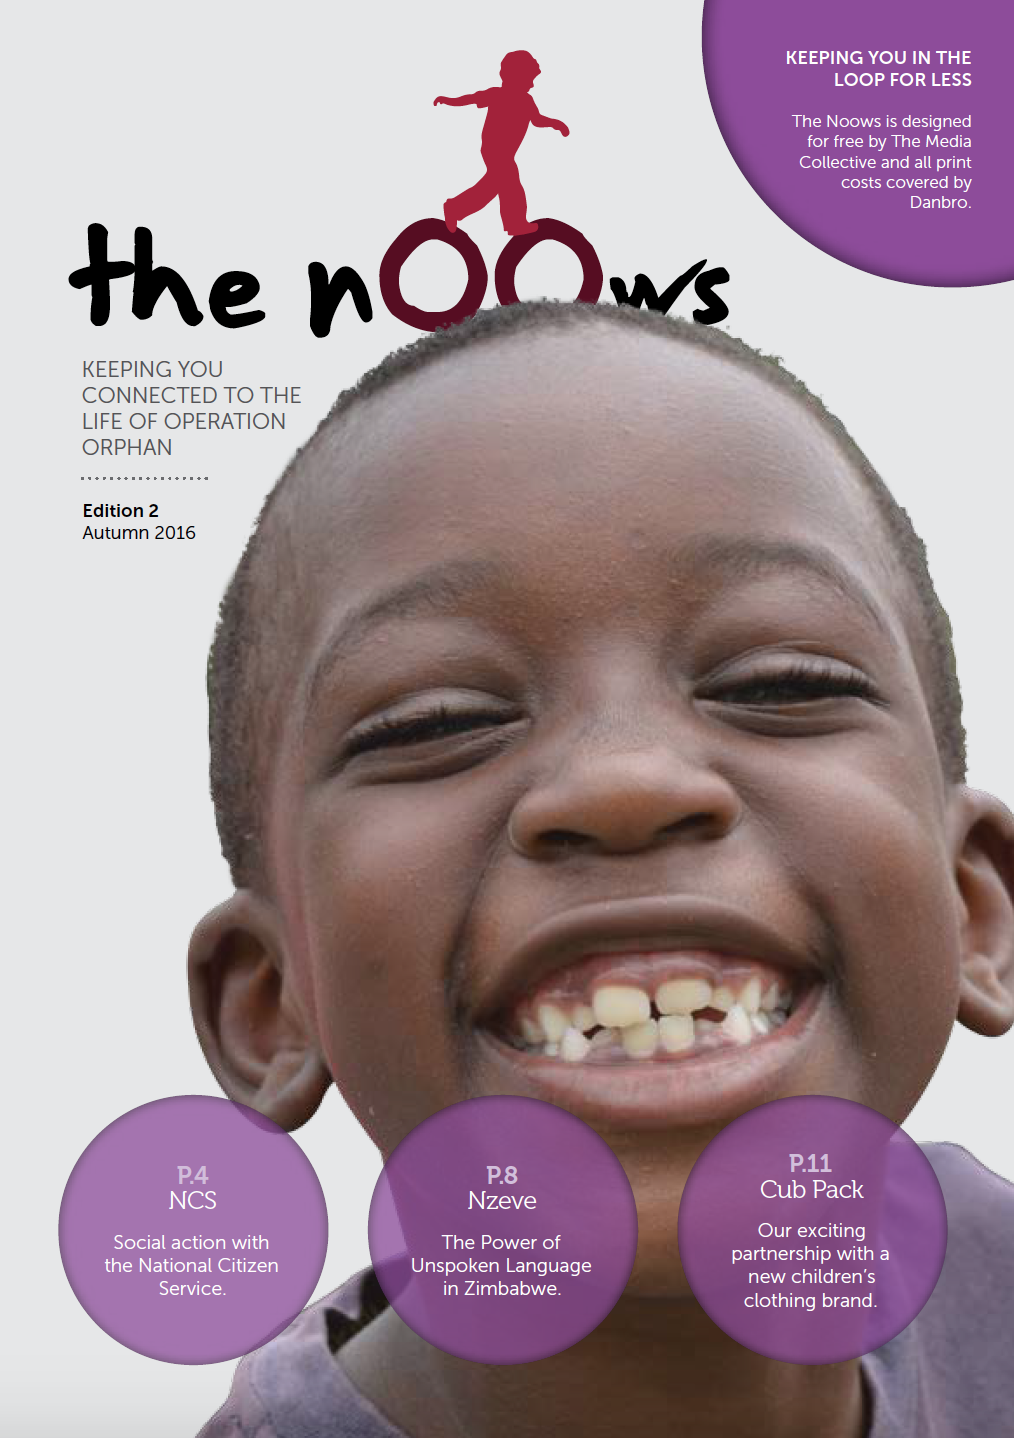 The Noows Edition 2